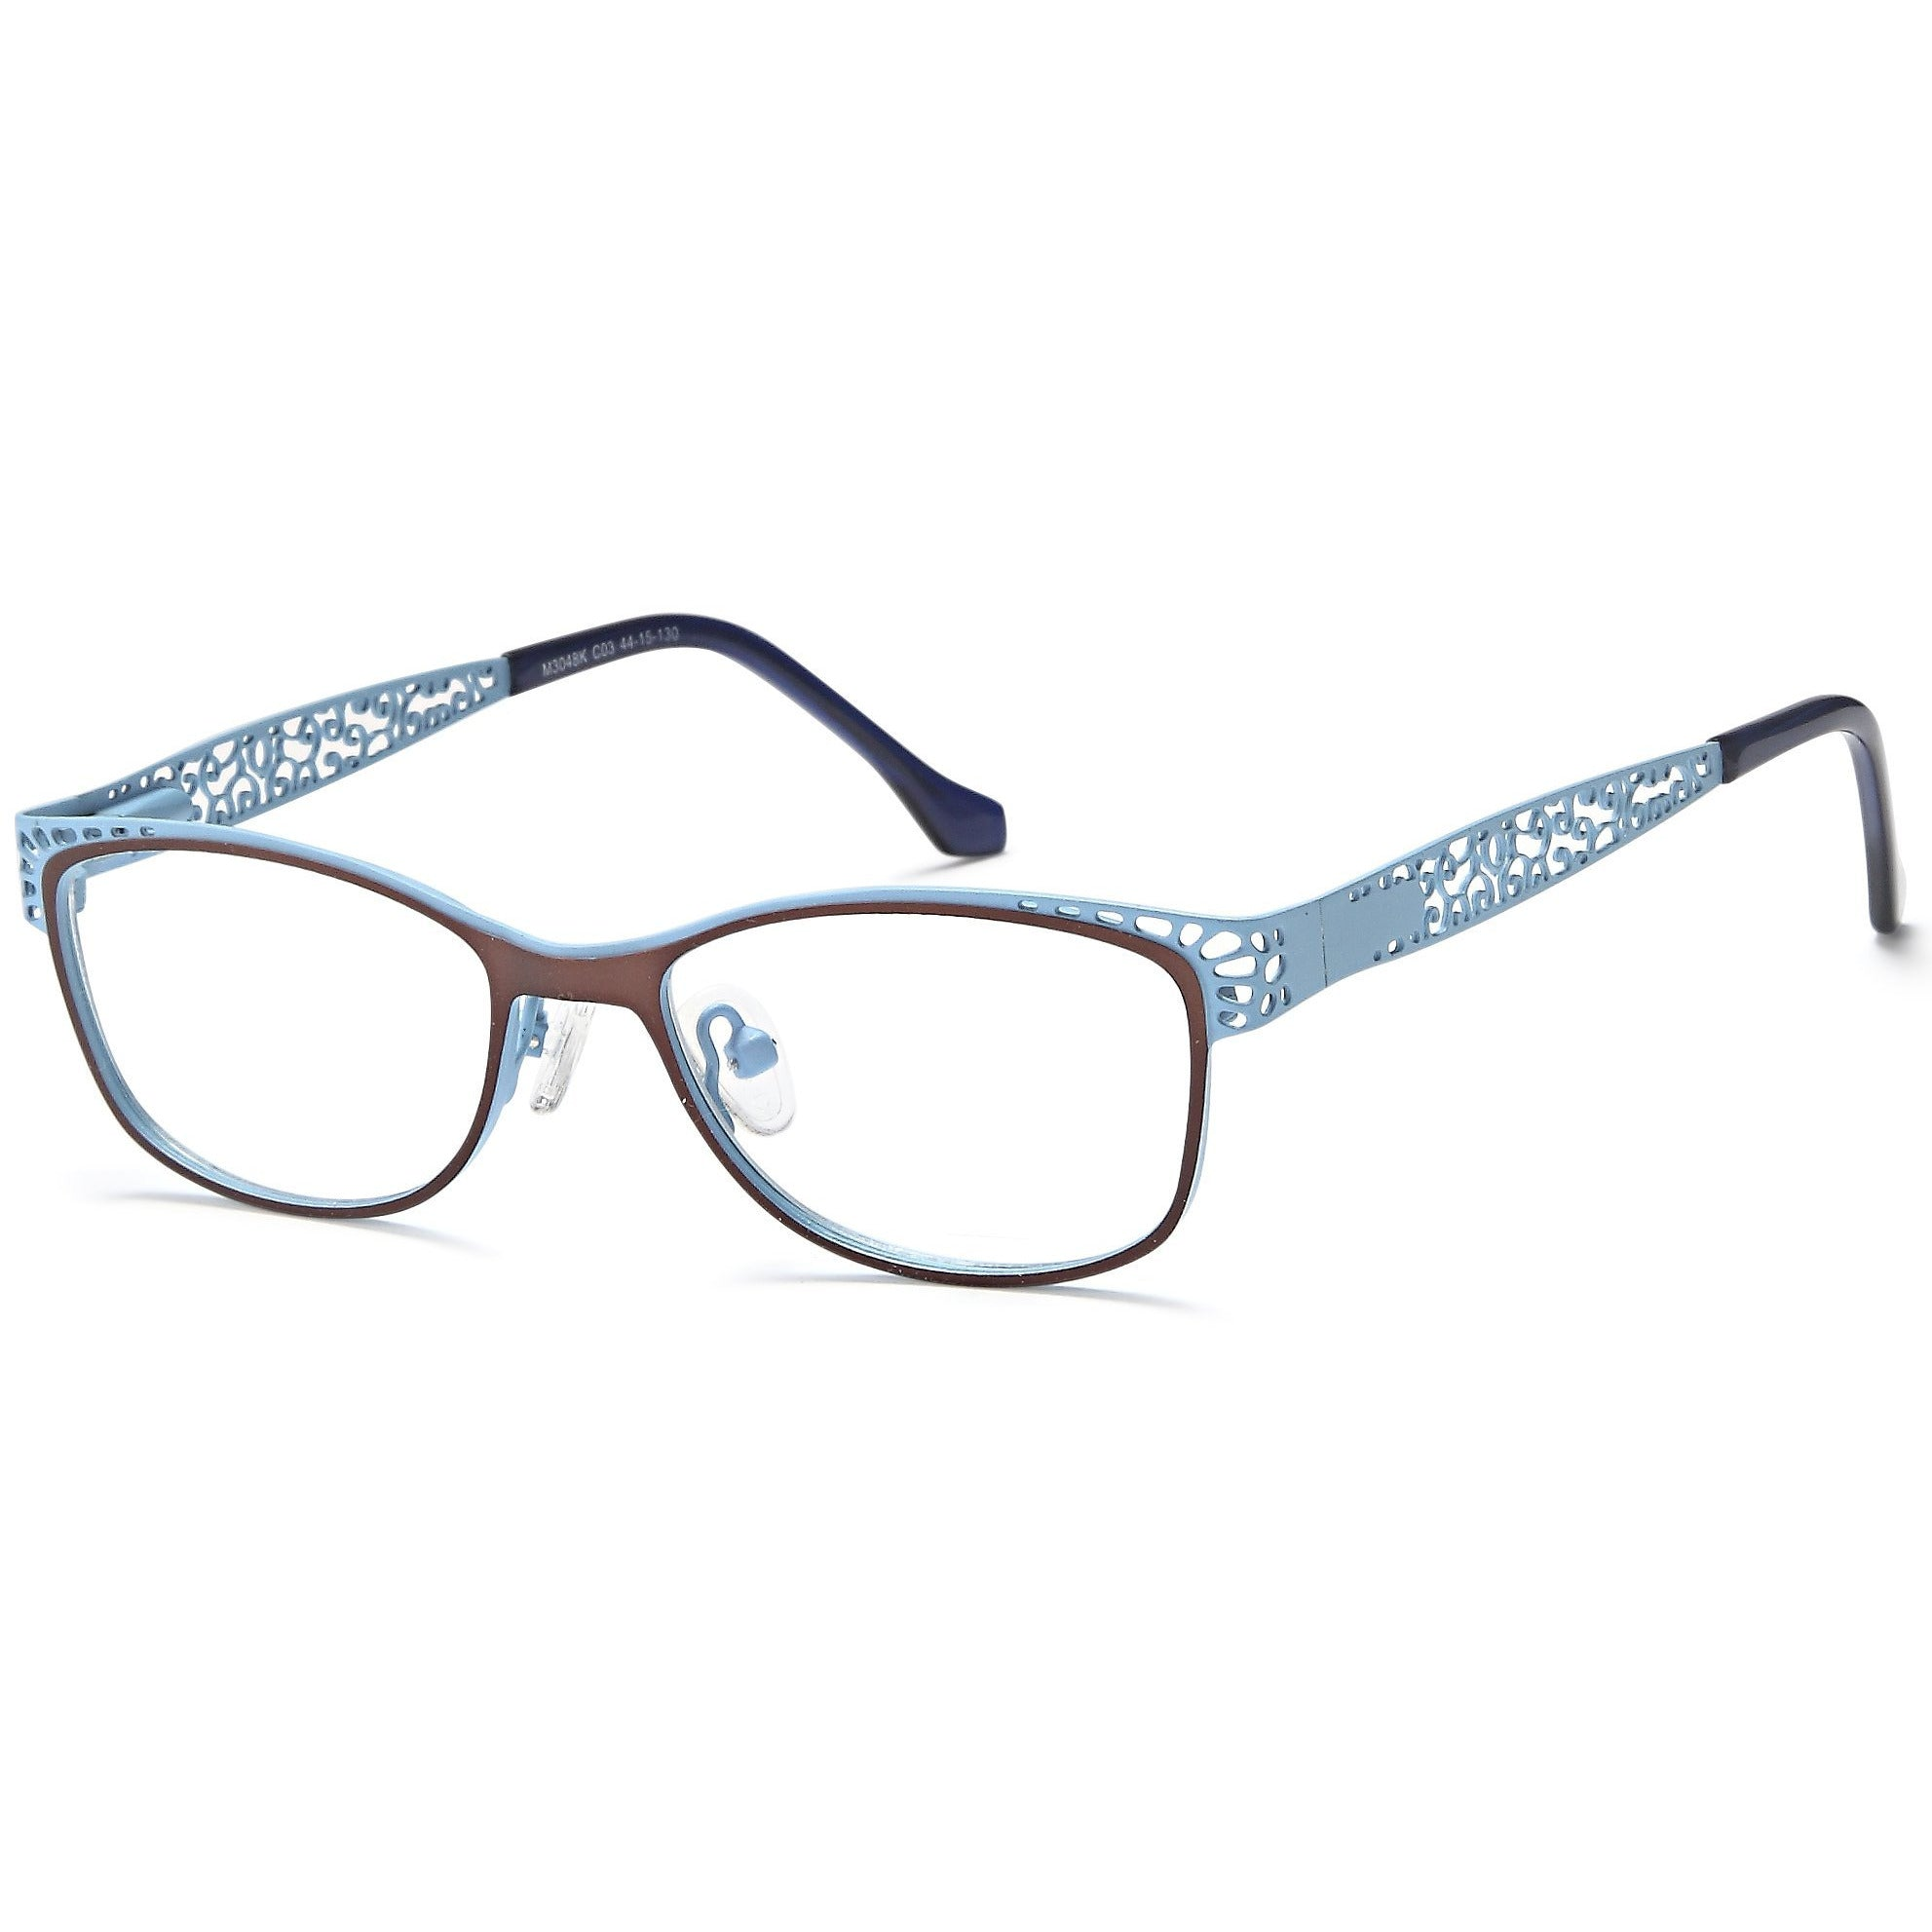 Menizzi Kids Prescription Glasses M3048K Eyeglasses Frames